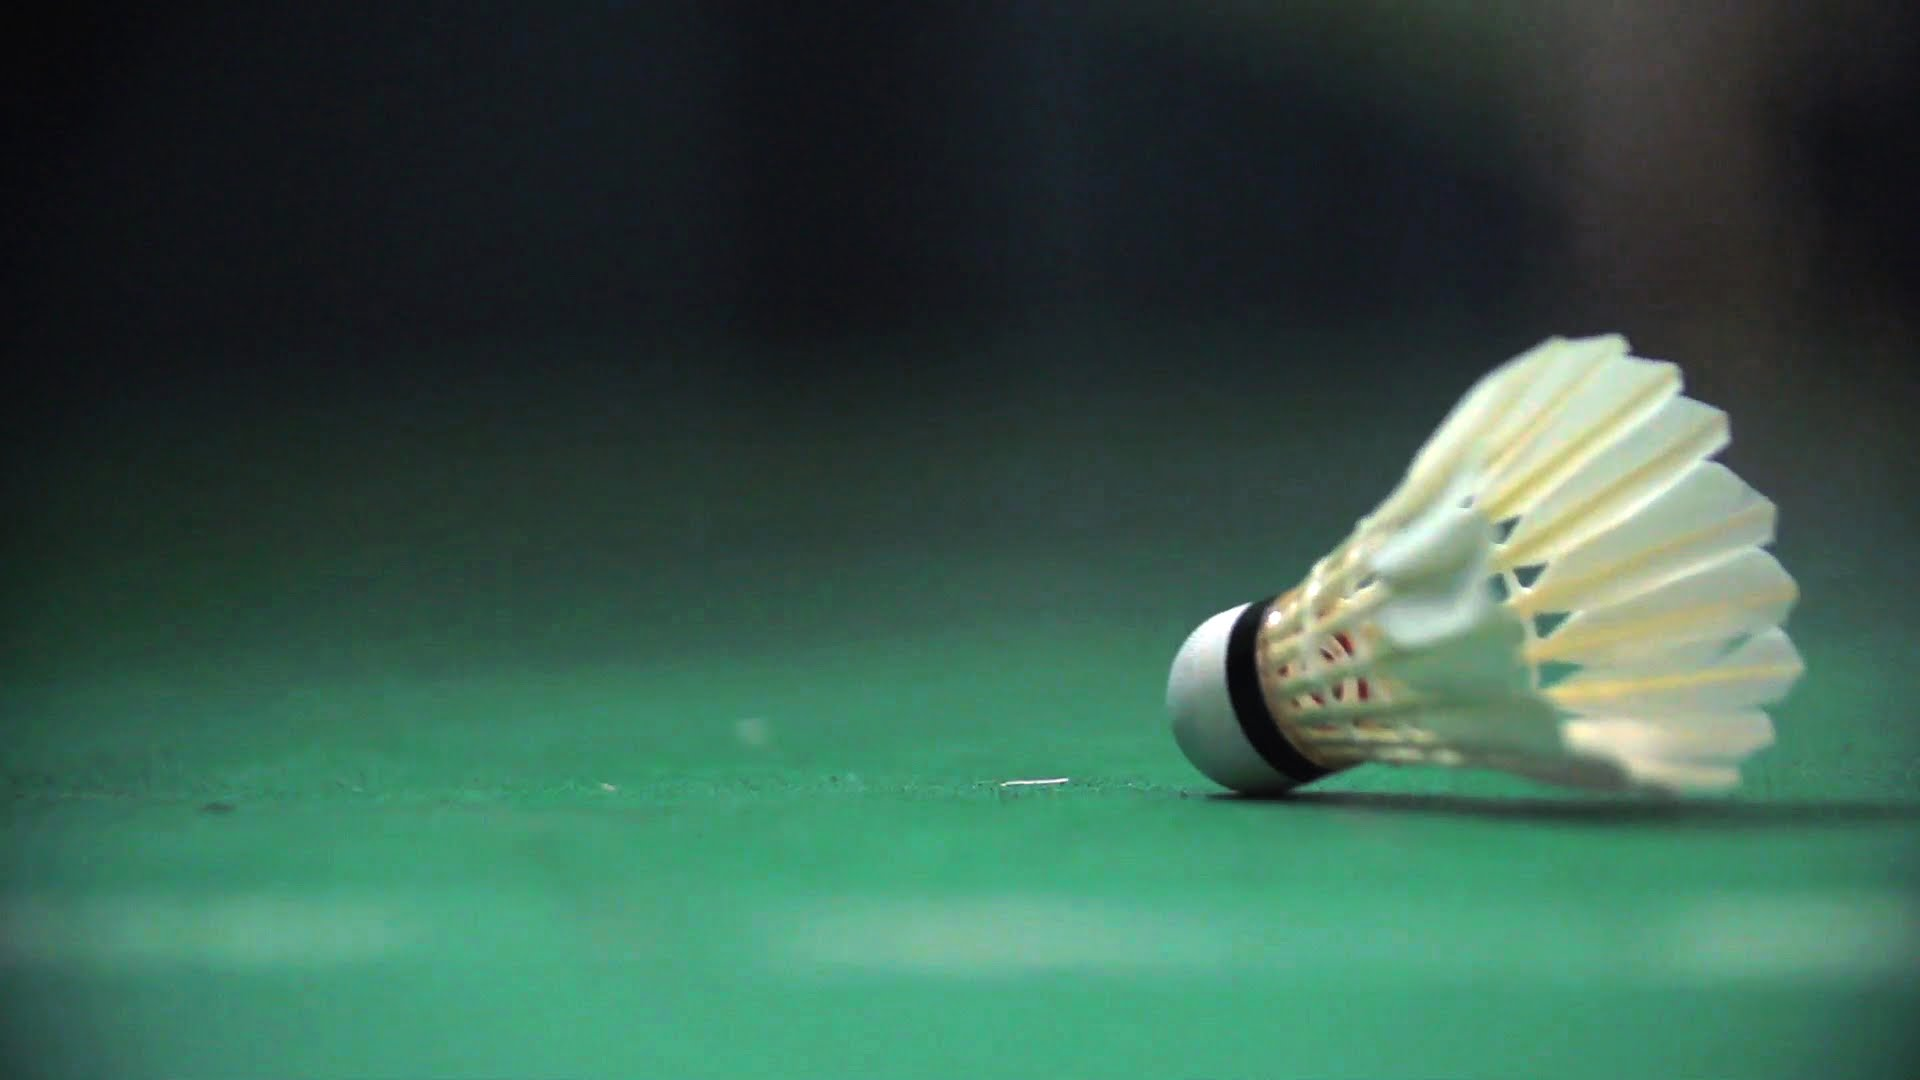 The Surprising Science And Speed Behind The Sport Of Badminton